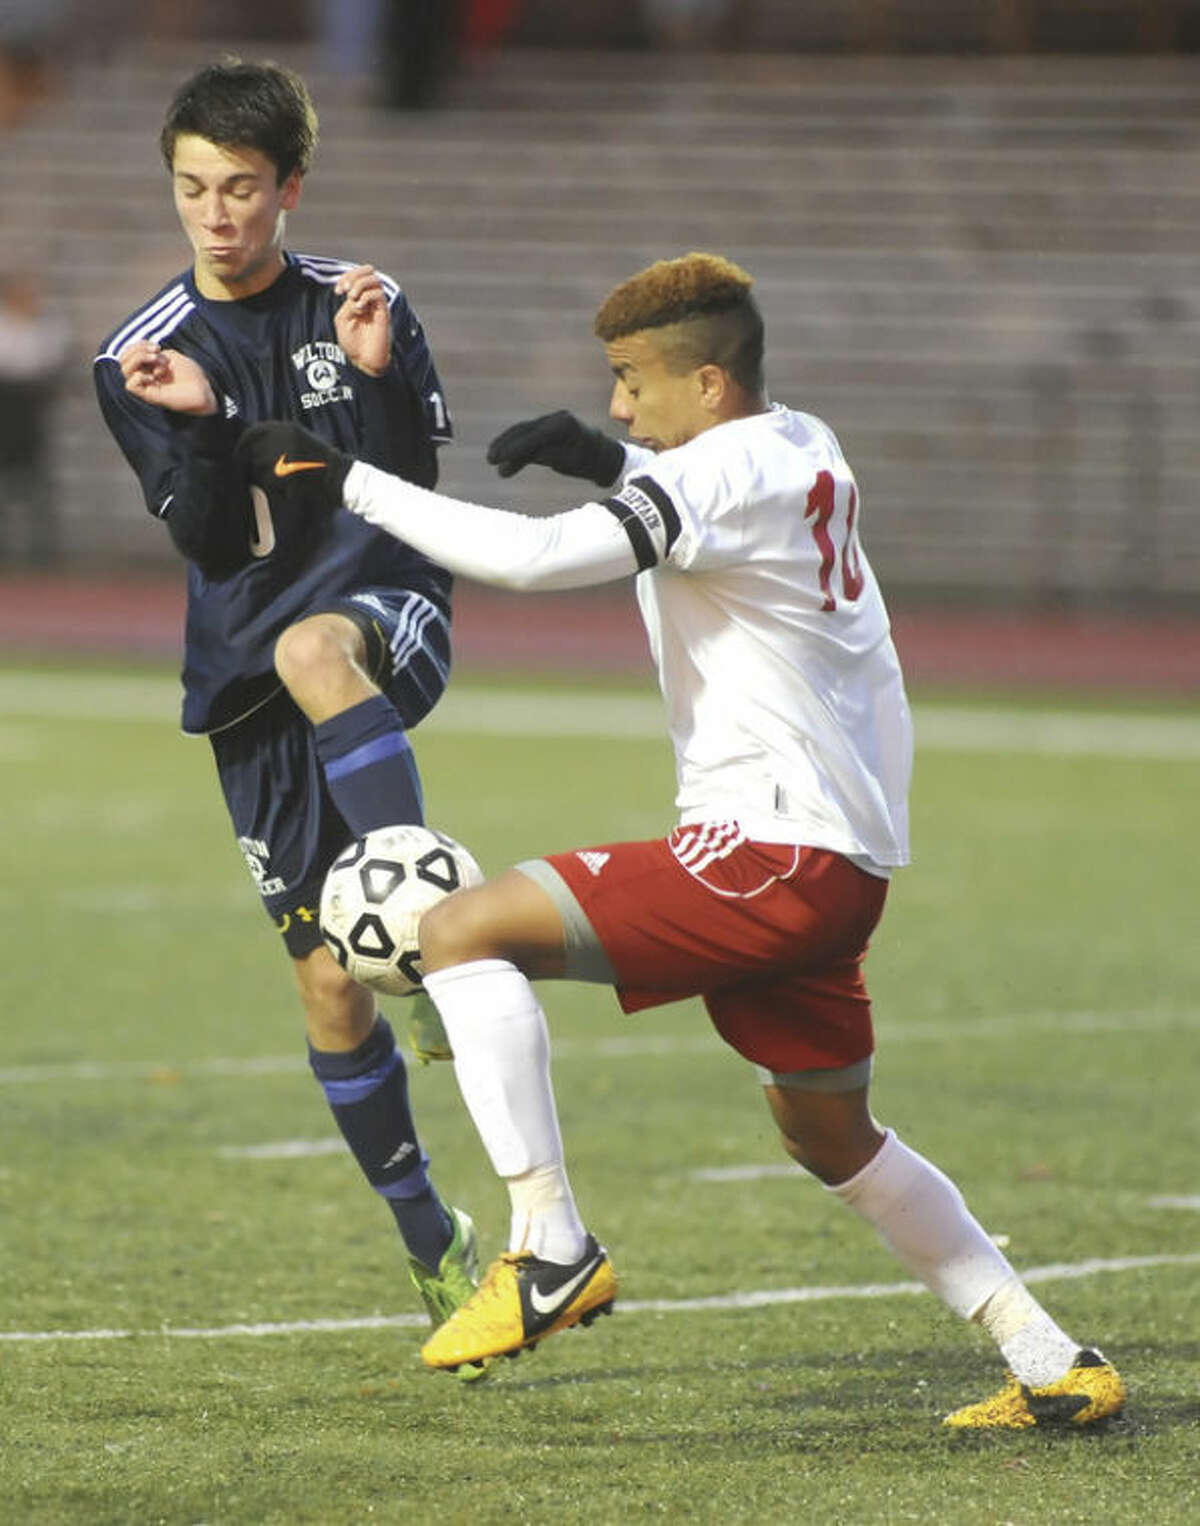 Hour photo/John Nash Wilton's jack Brandt, left, and Conard's Matheus Souza brace for a collision as they play the ball during Thursday's CIAC Class LL second round playoff game. Conard won the game, 3-1.